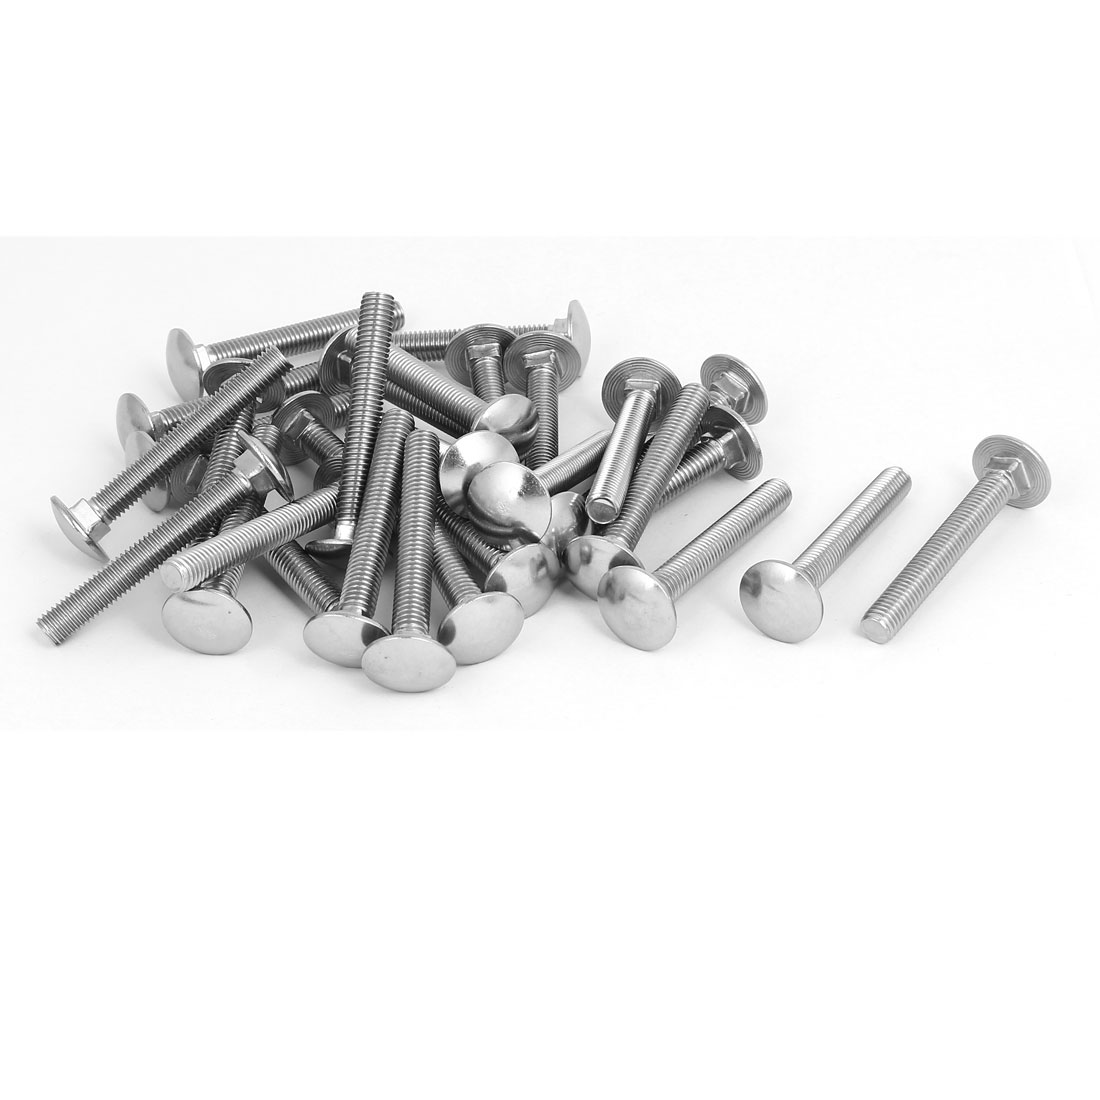 M8x60mm 304 Stainless Steel Round Cap Square Neck Trailer Carriage Bolts 30pcs